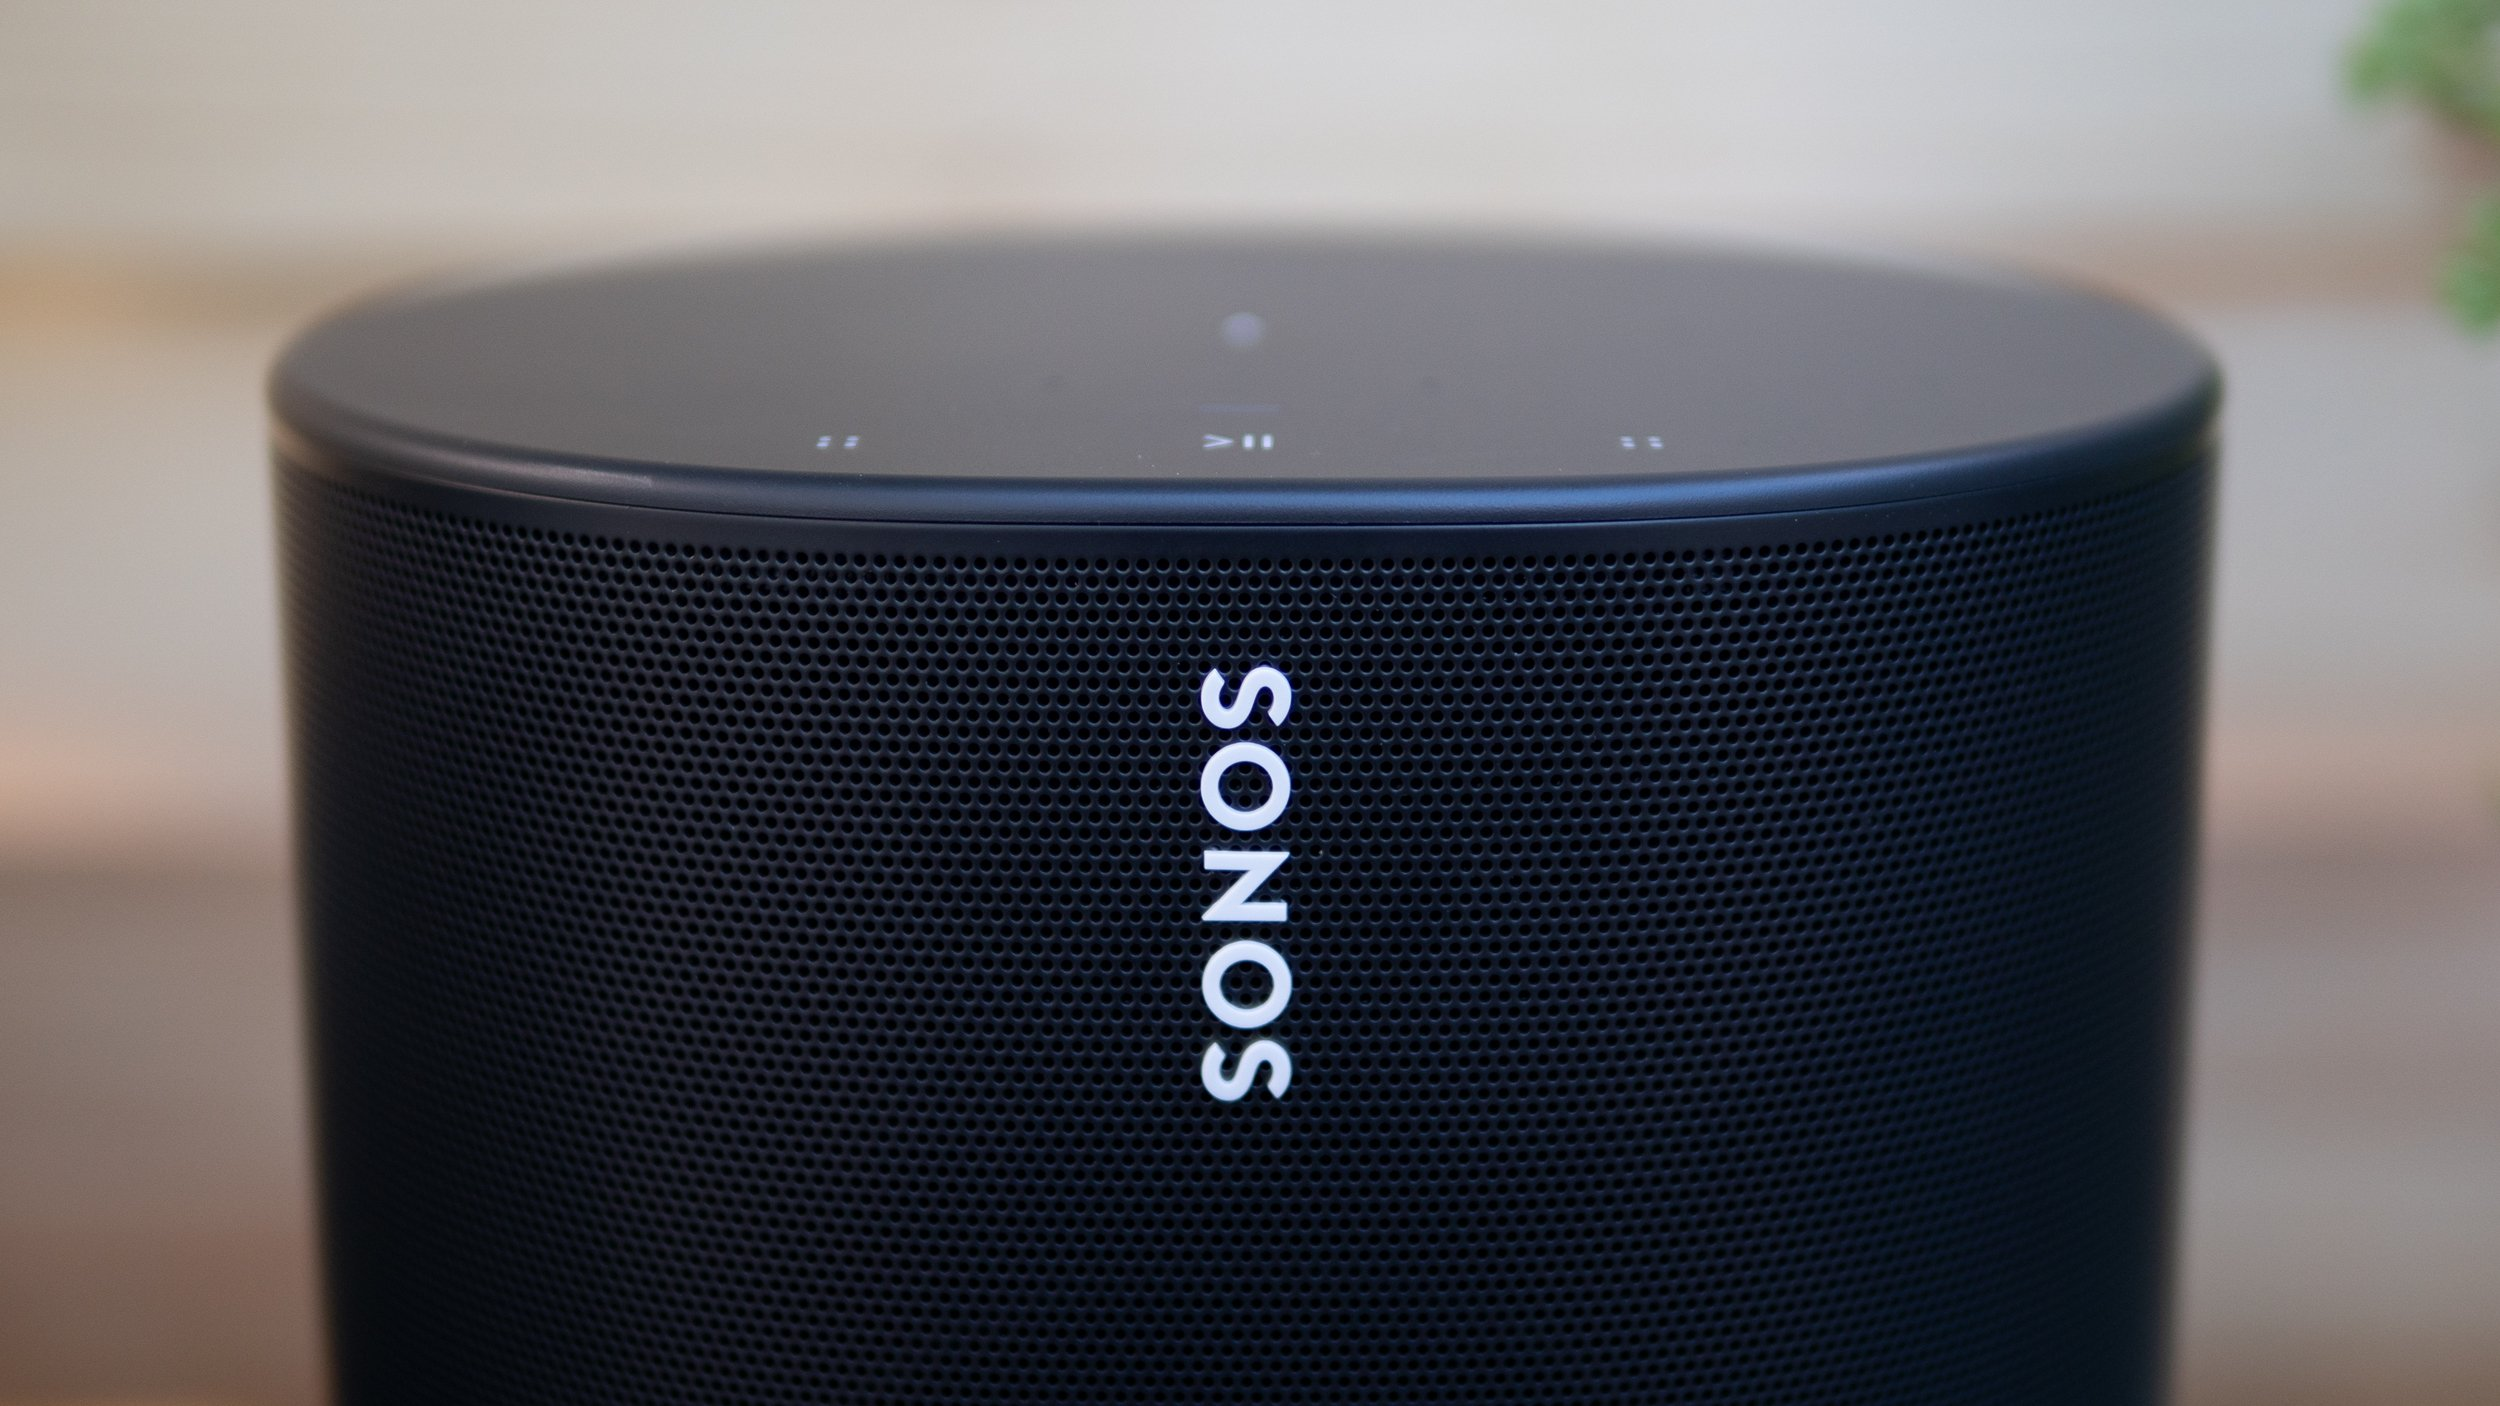 Sonos Move review: The best smart speaker on the market, full stop